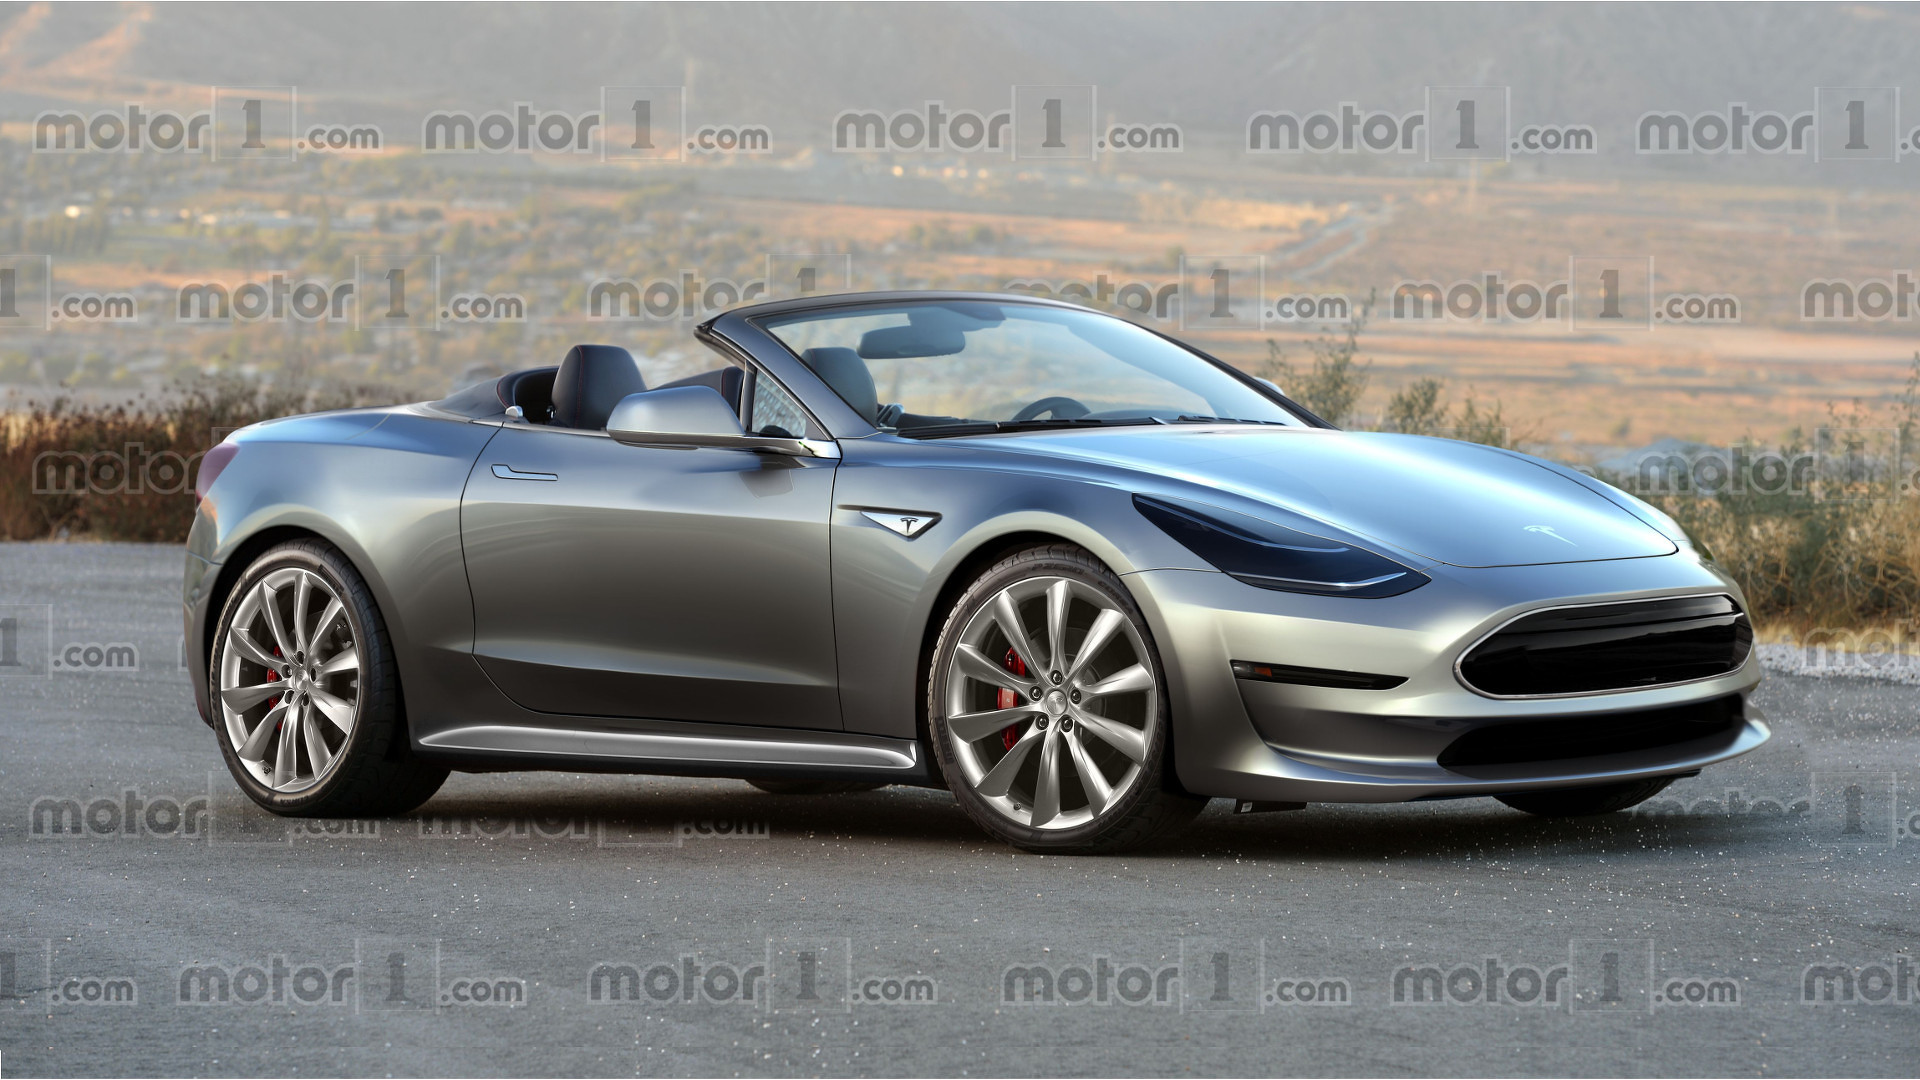 Lotus Elise 0 60 >> New Tesla Roadster Could Hit 60 MPH In Under 2 Seconds